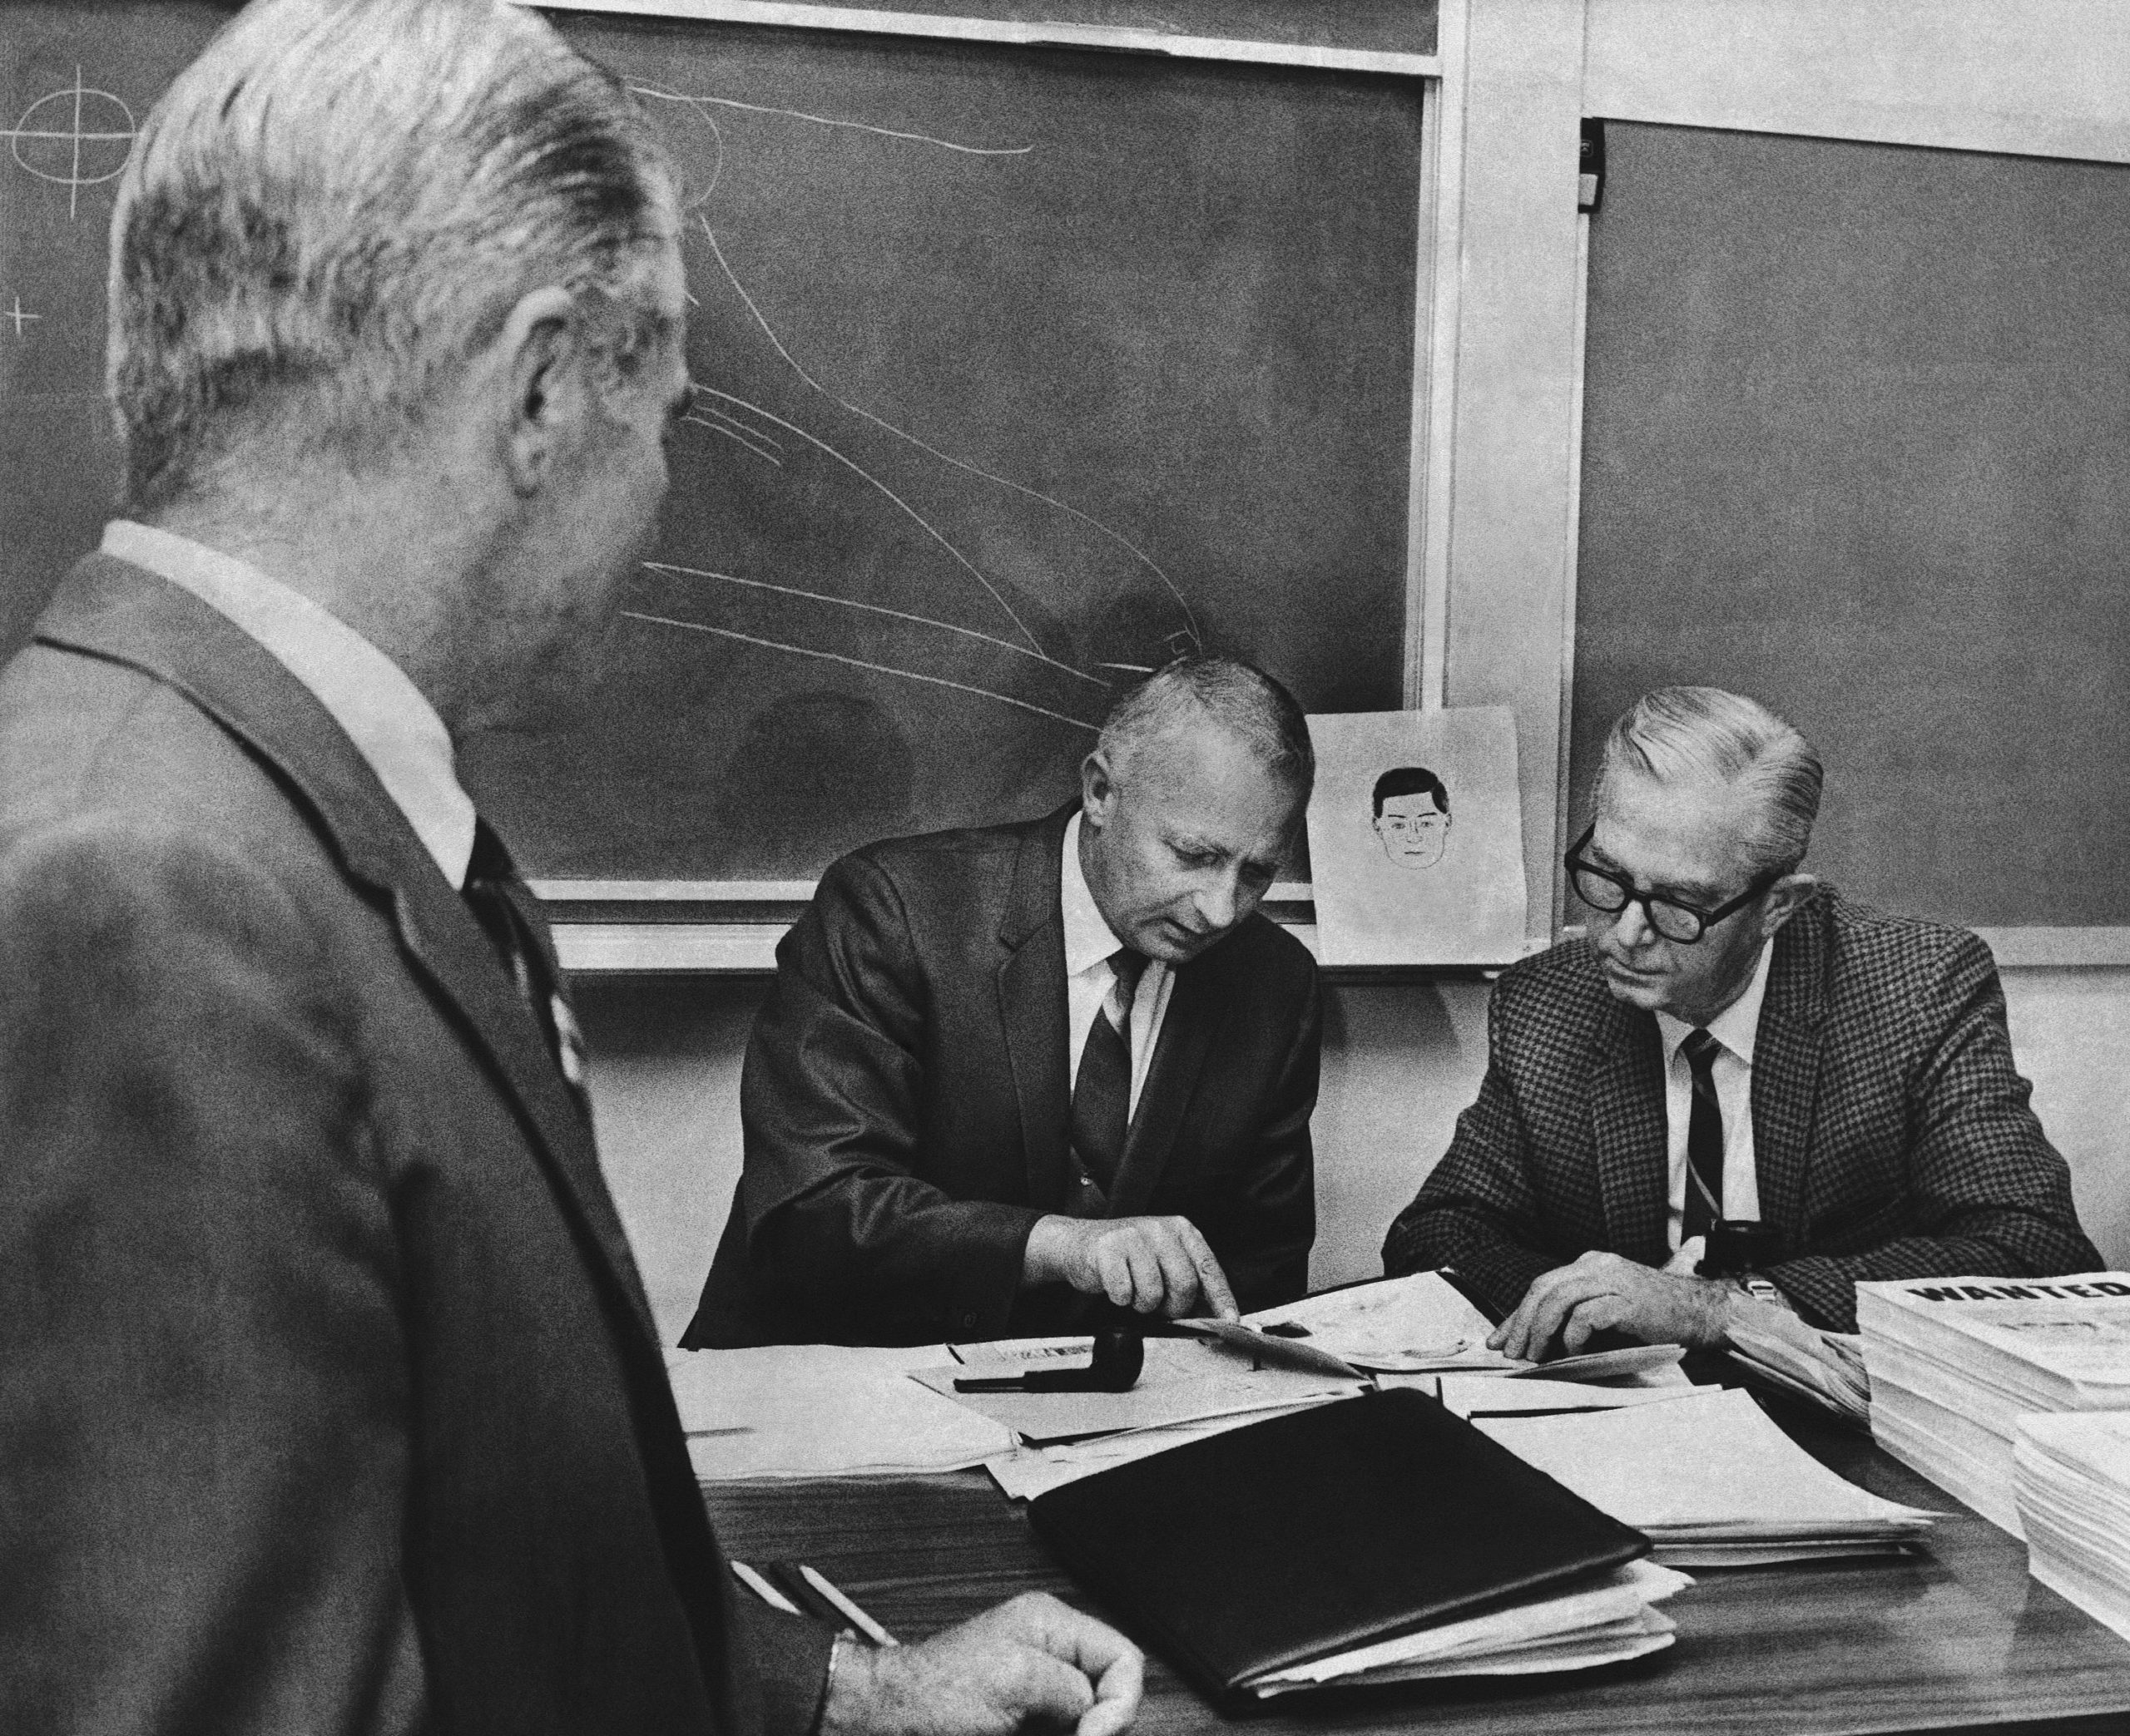 zodiac-killer-investigators-meeting-scaled Was There More Than One Zodiac Killer?